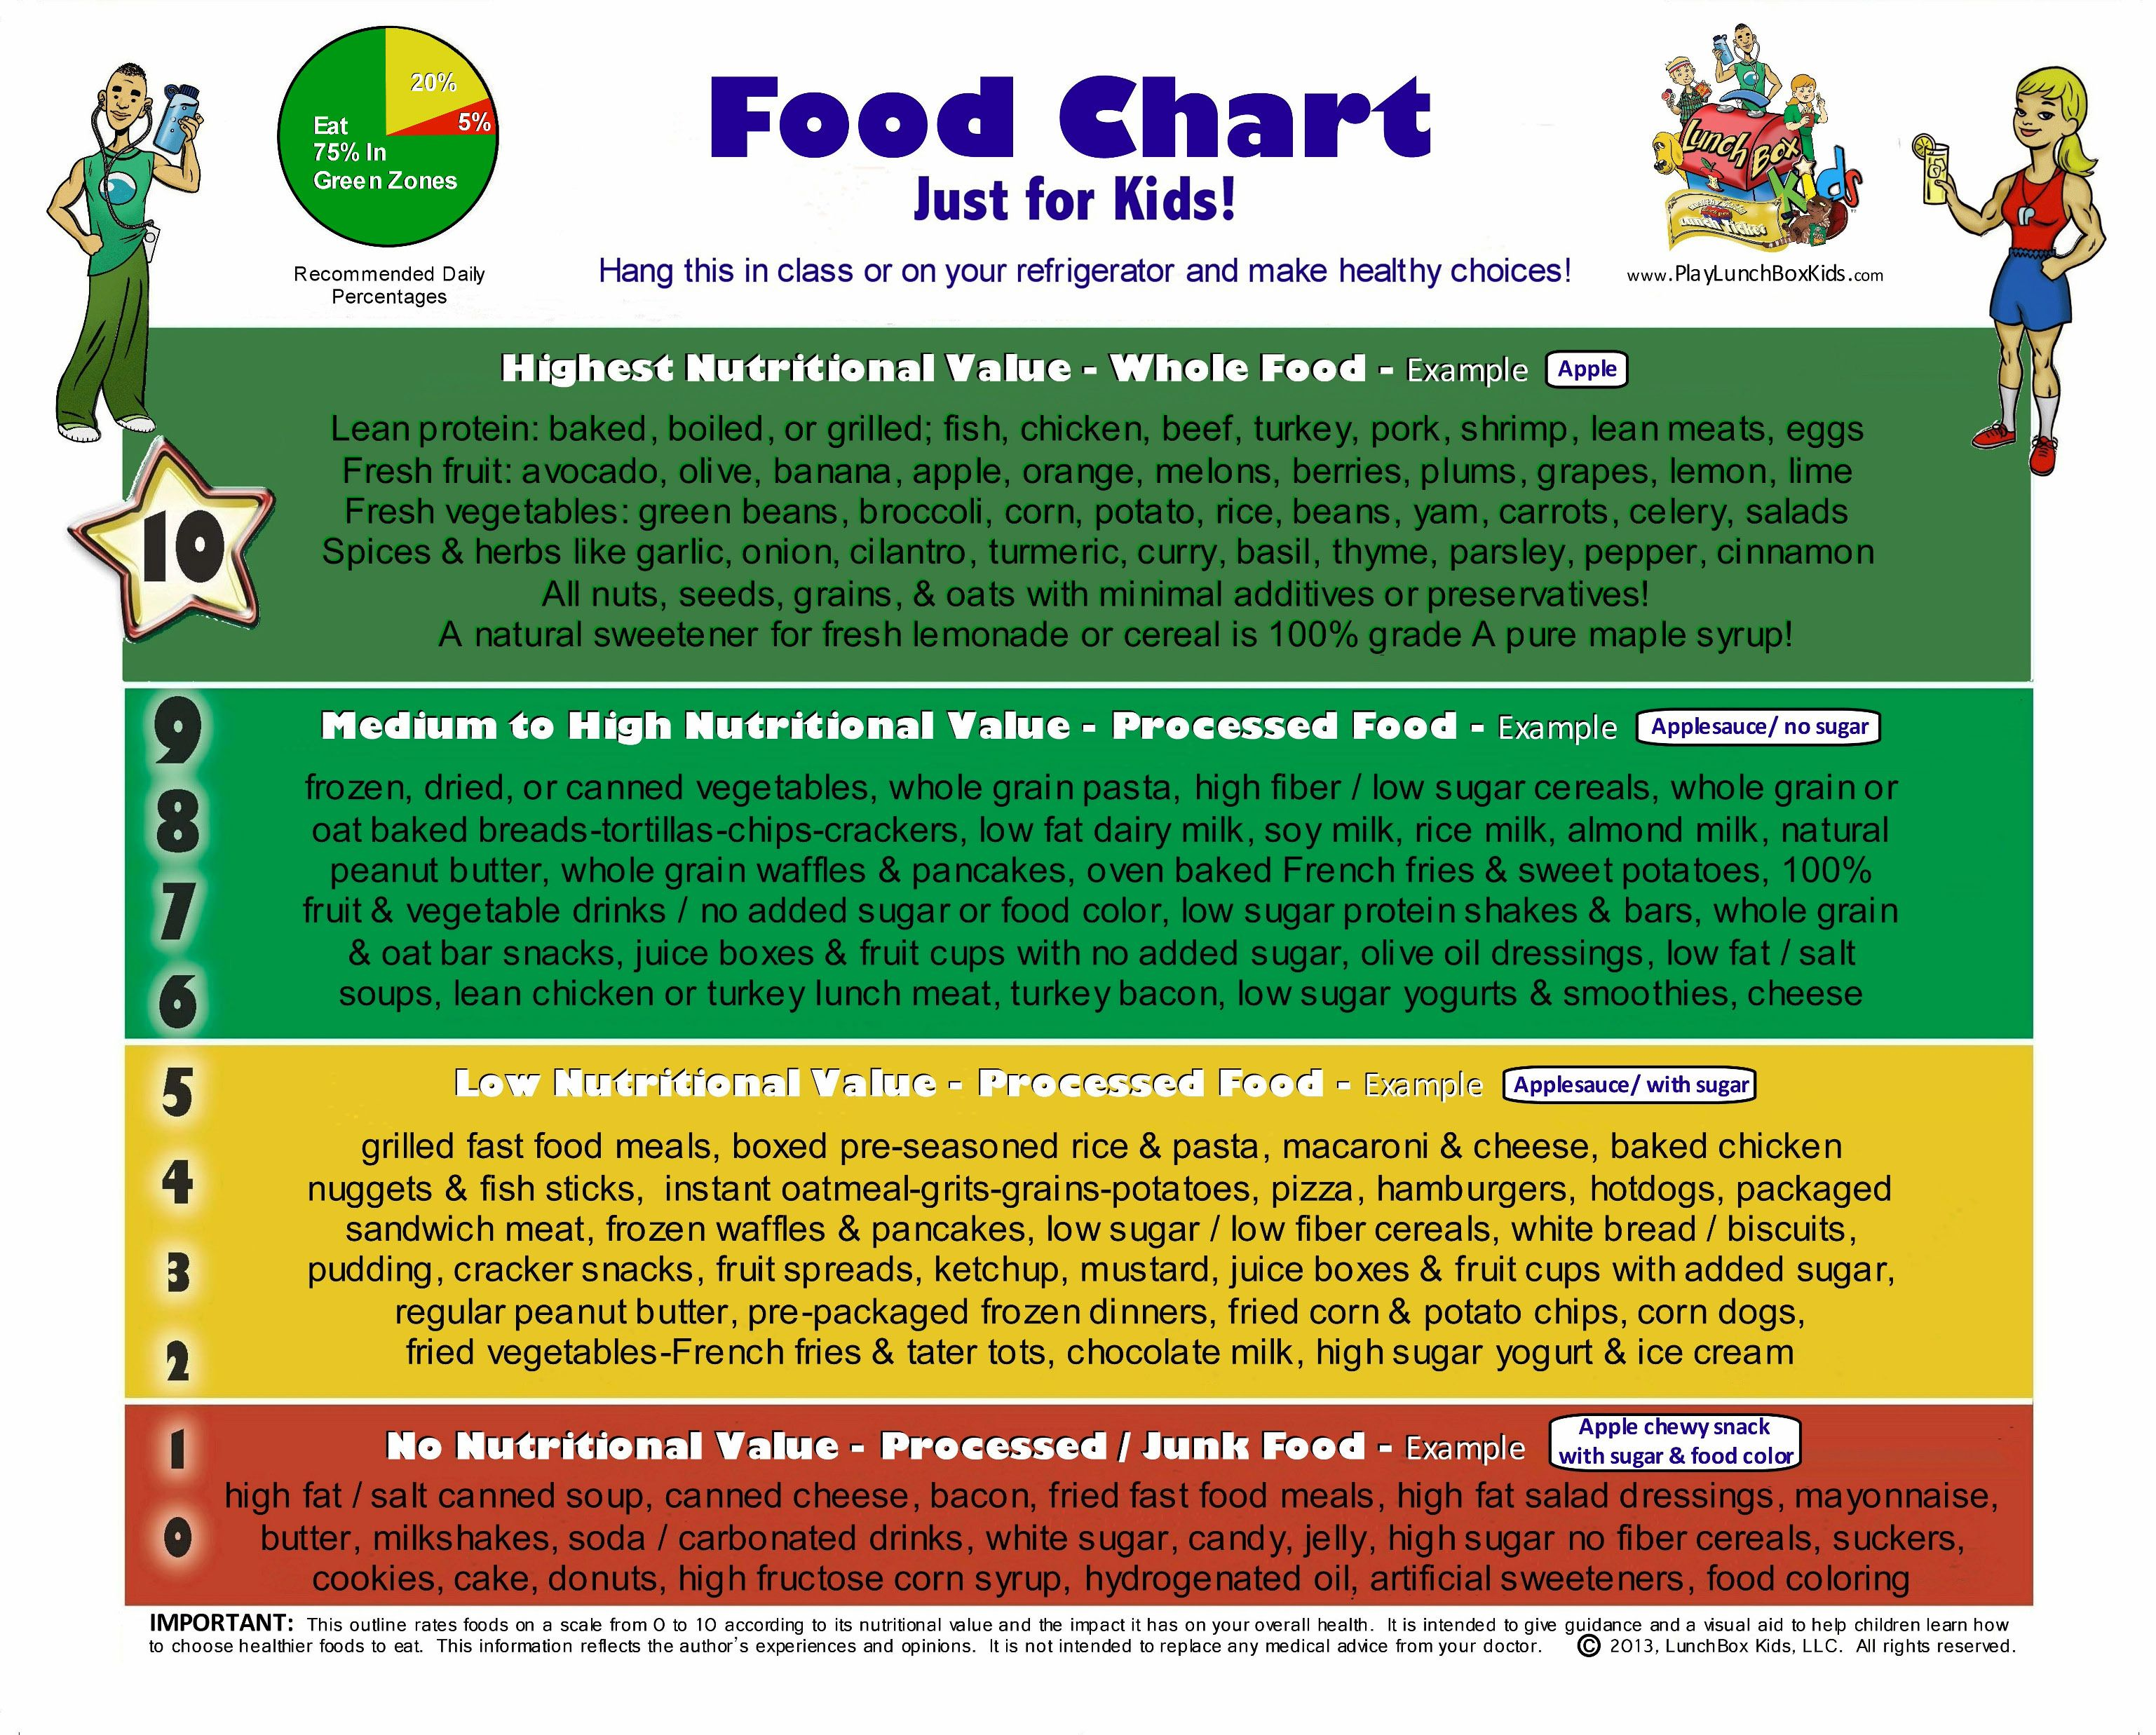 Food Scale Chart for children. Whole Foods/Processed Foods/Junk ...